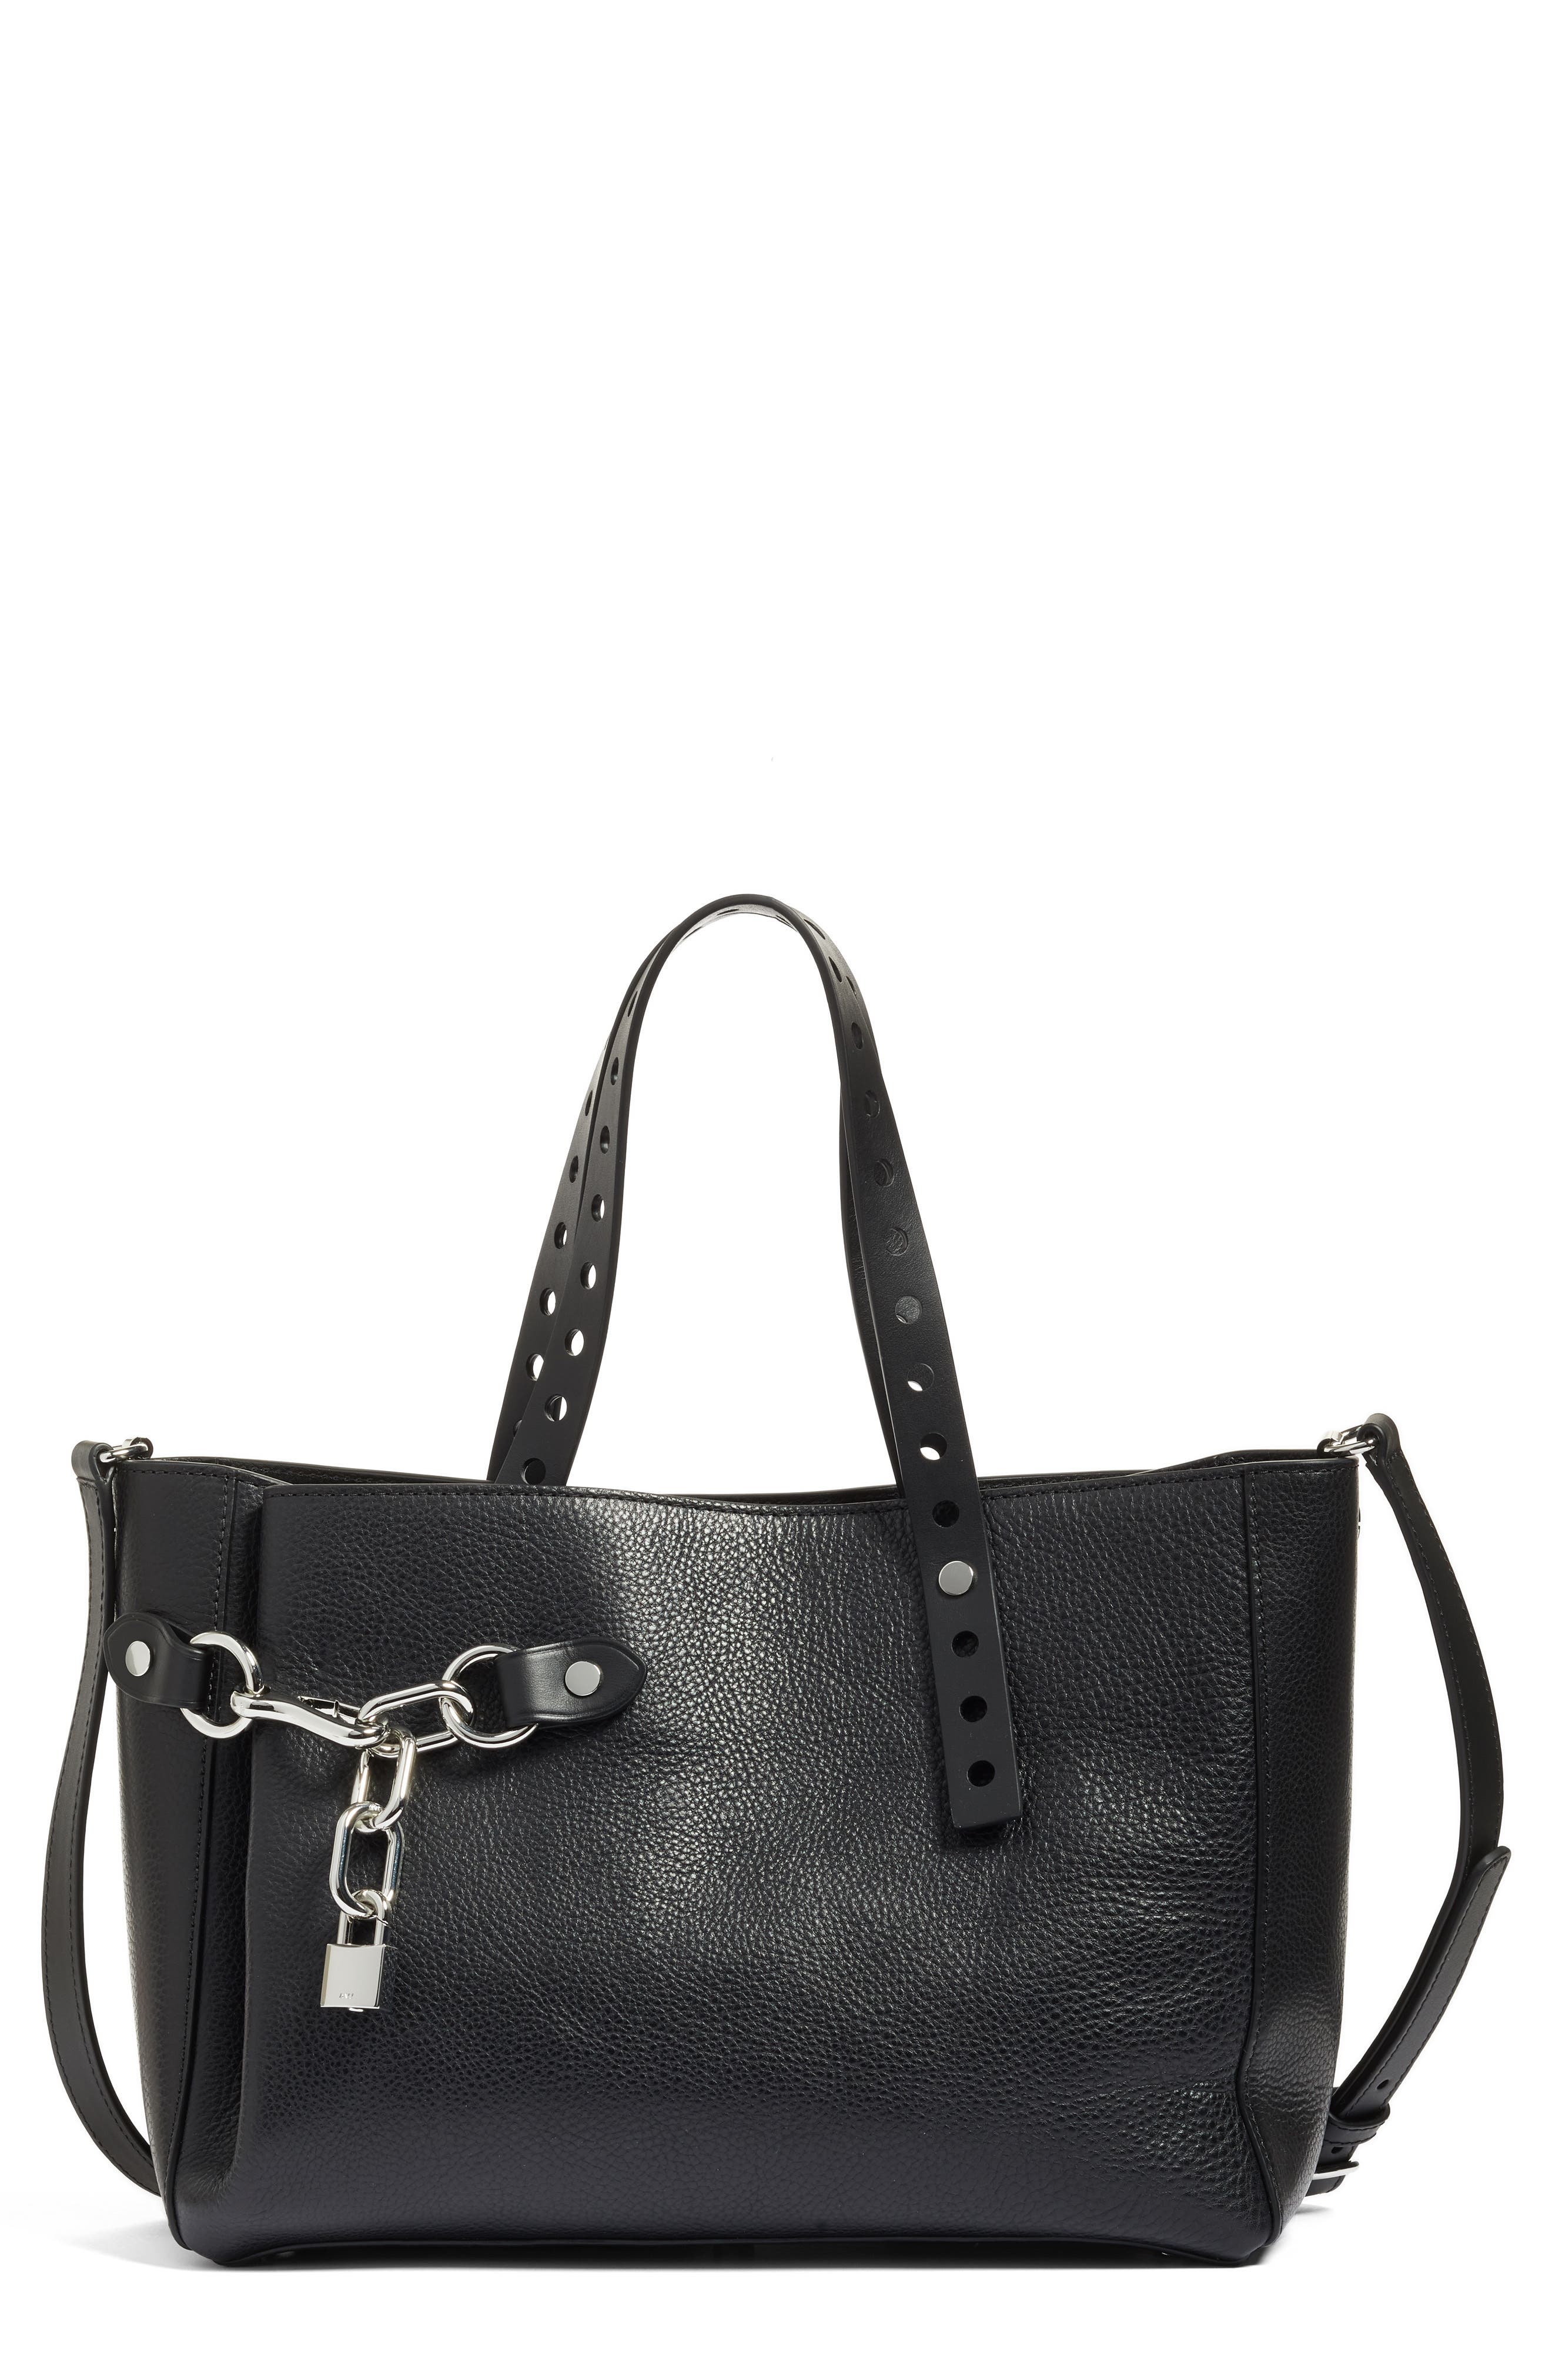 Alternate Image 1 Selected - Alexander Wang Attica Leather Tote